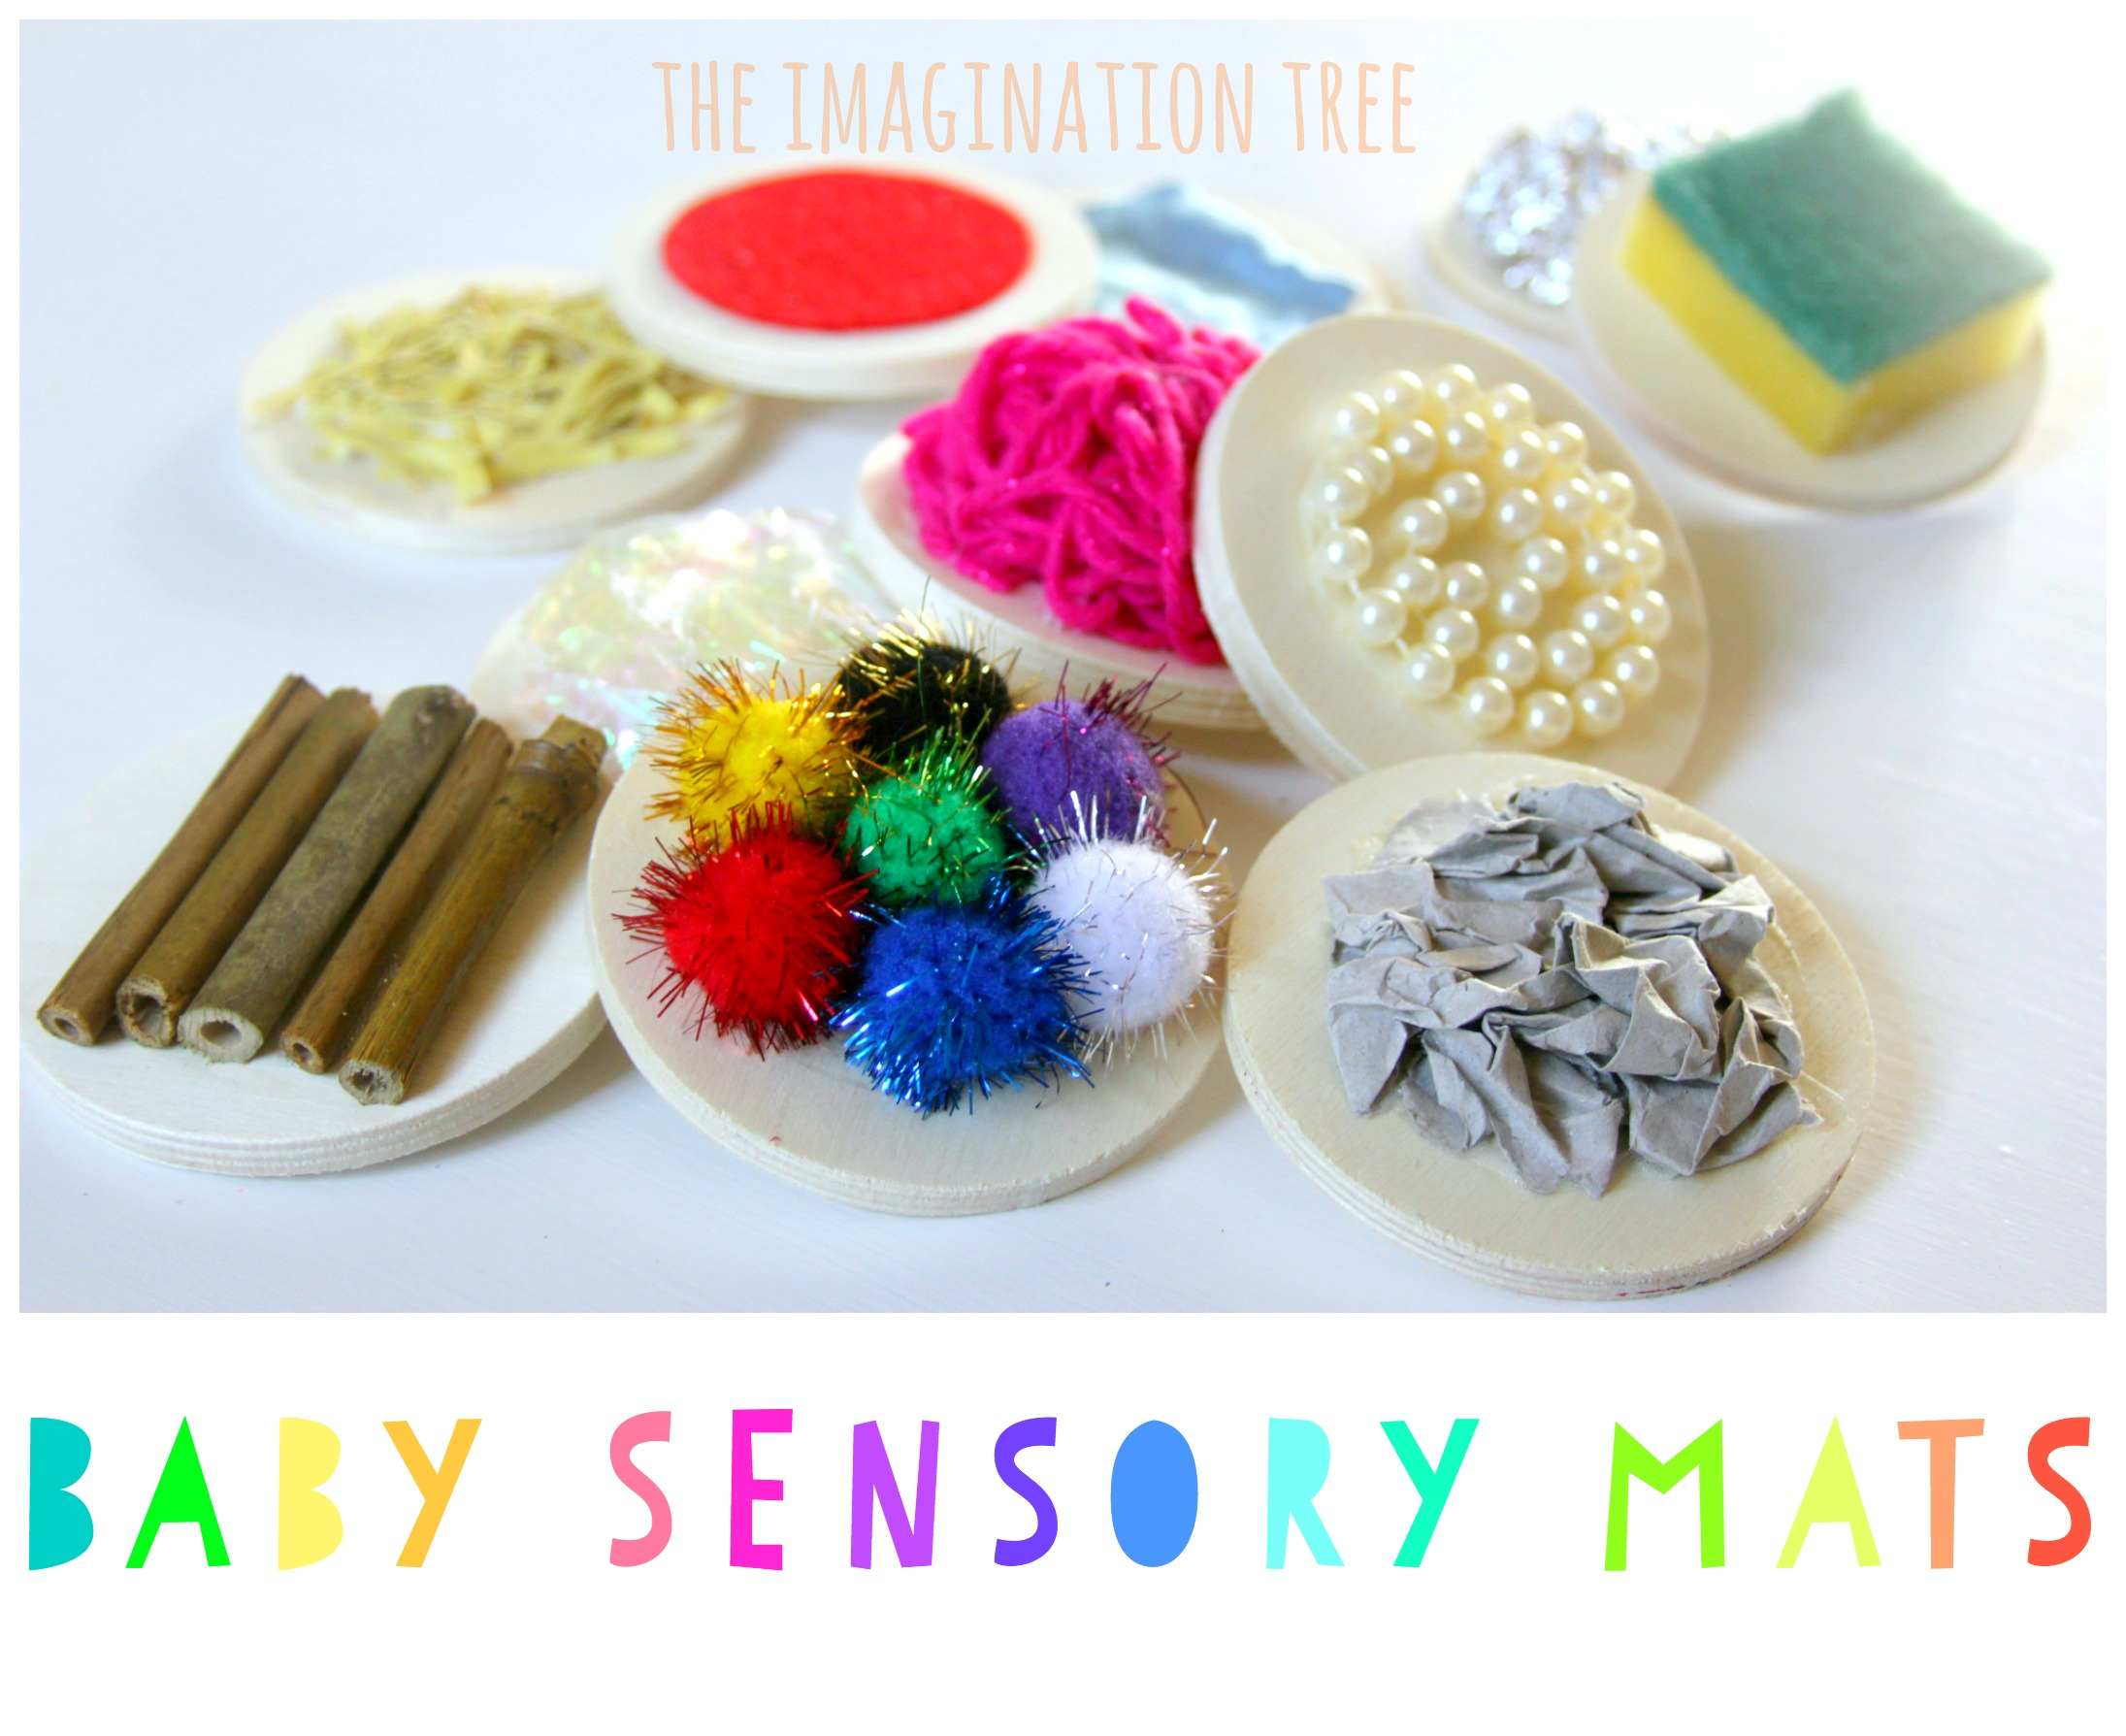 DIY Sensory Mats for Babies and Toddlers The Imagination Tree